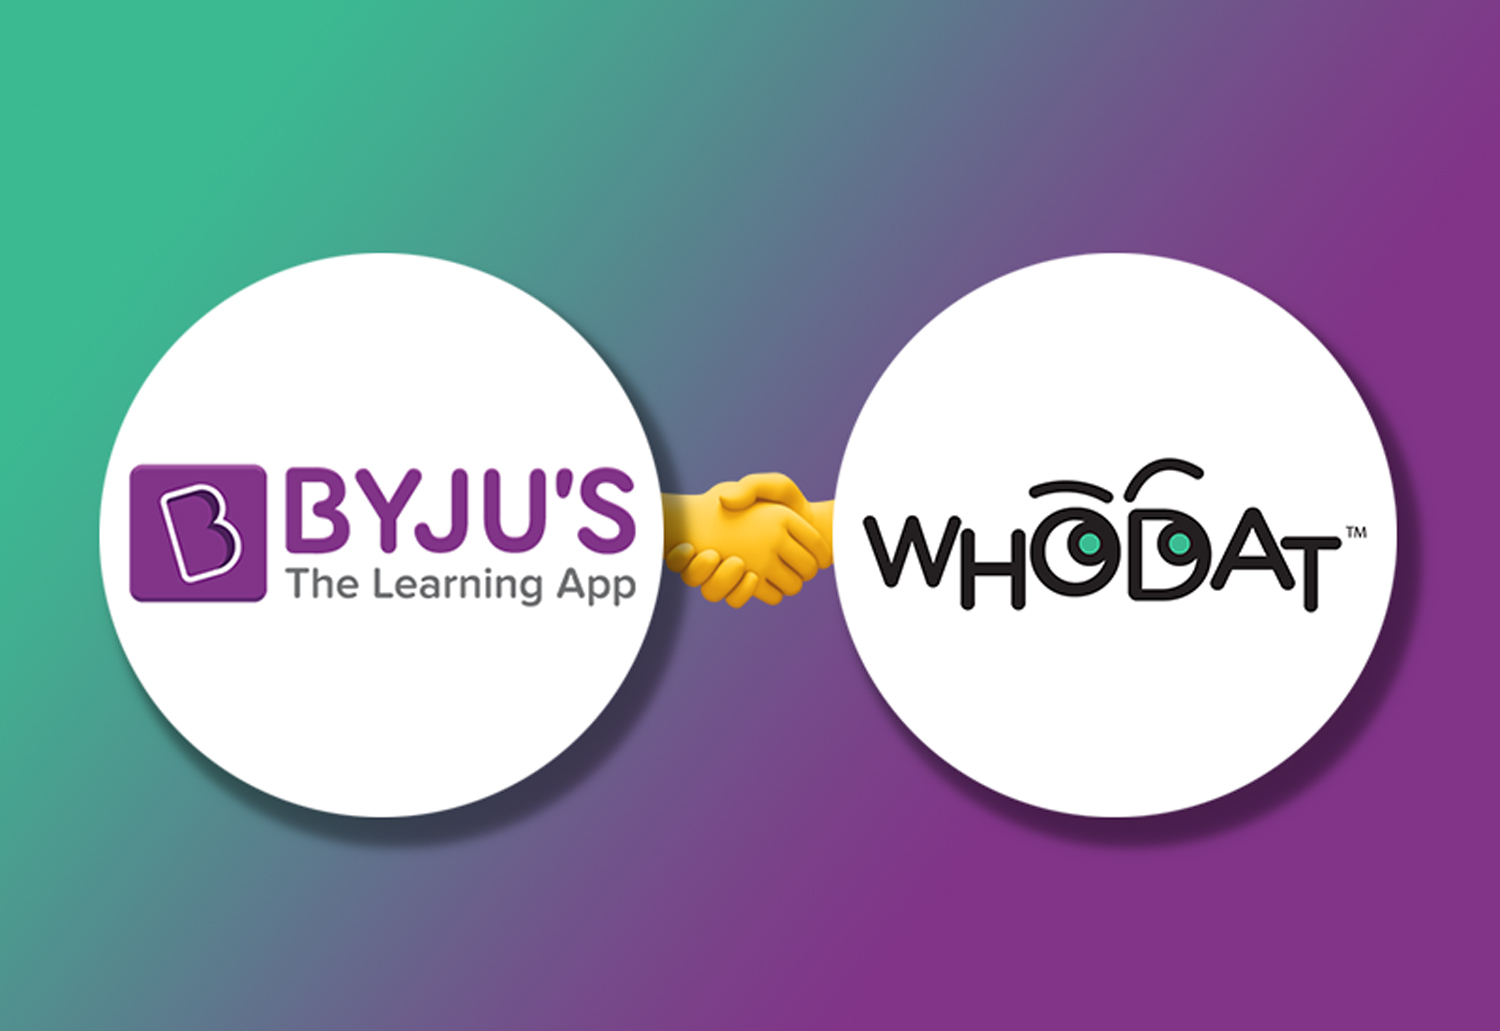 Logo of Byju's and Whodat on Gradient background